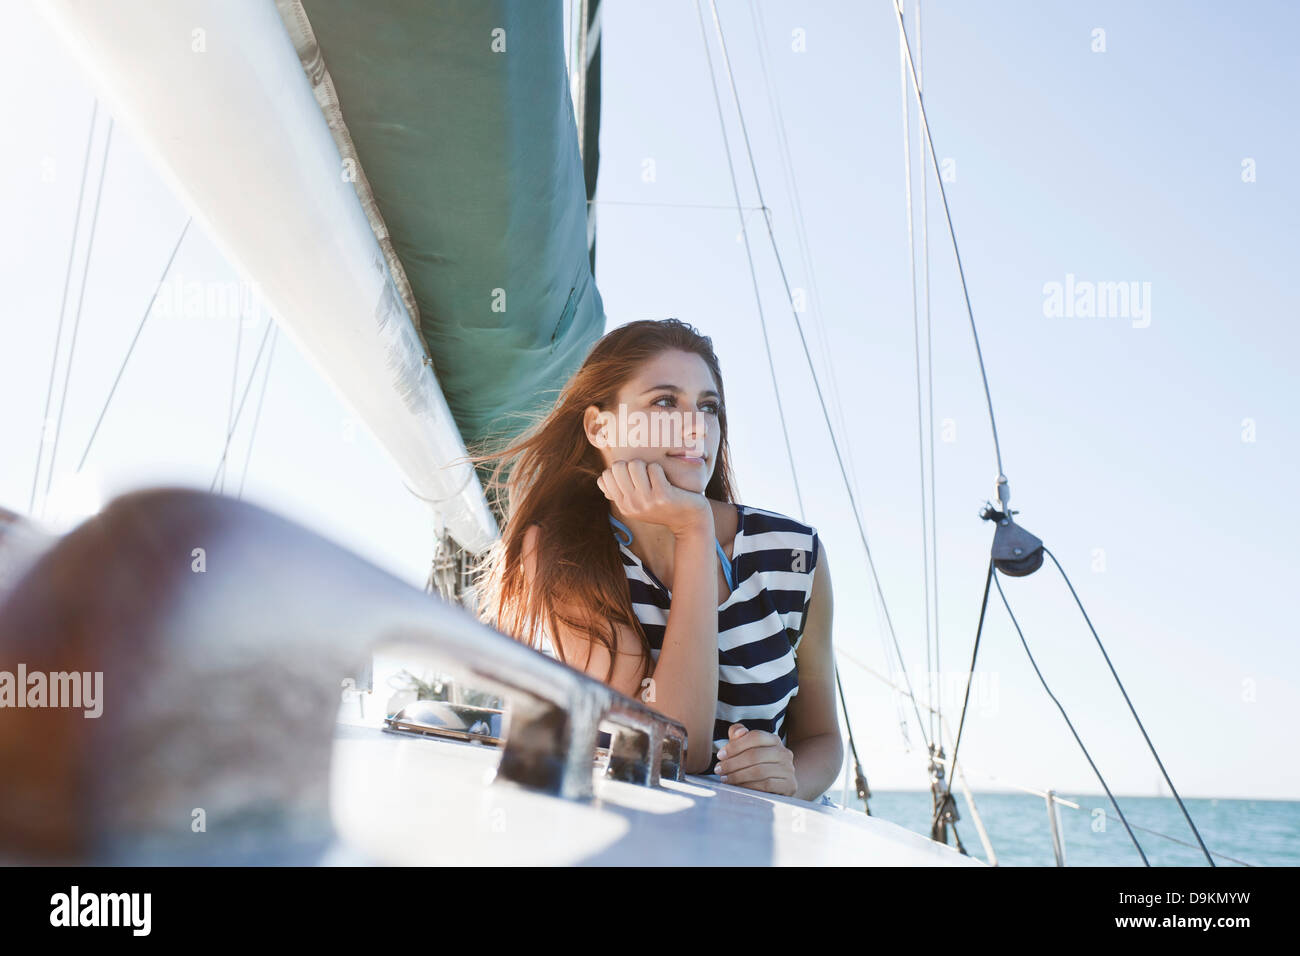 Young woman on yacht wearing striped top - Stock Image